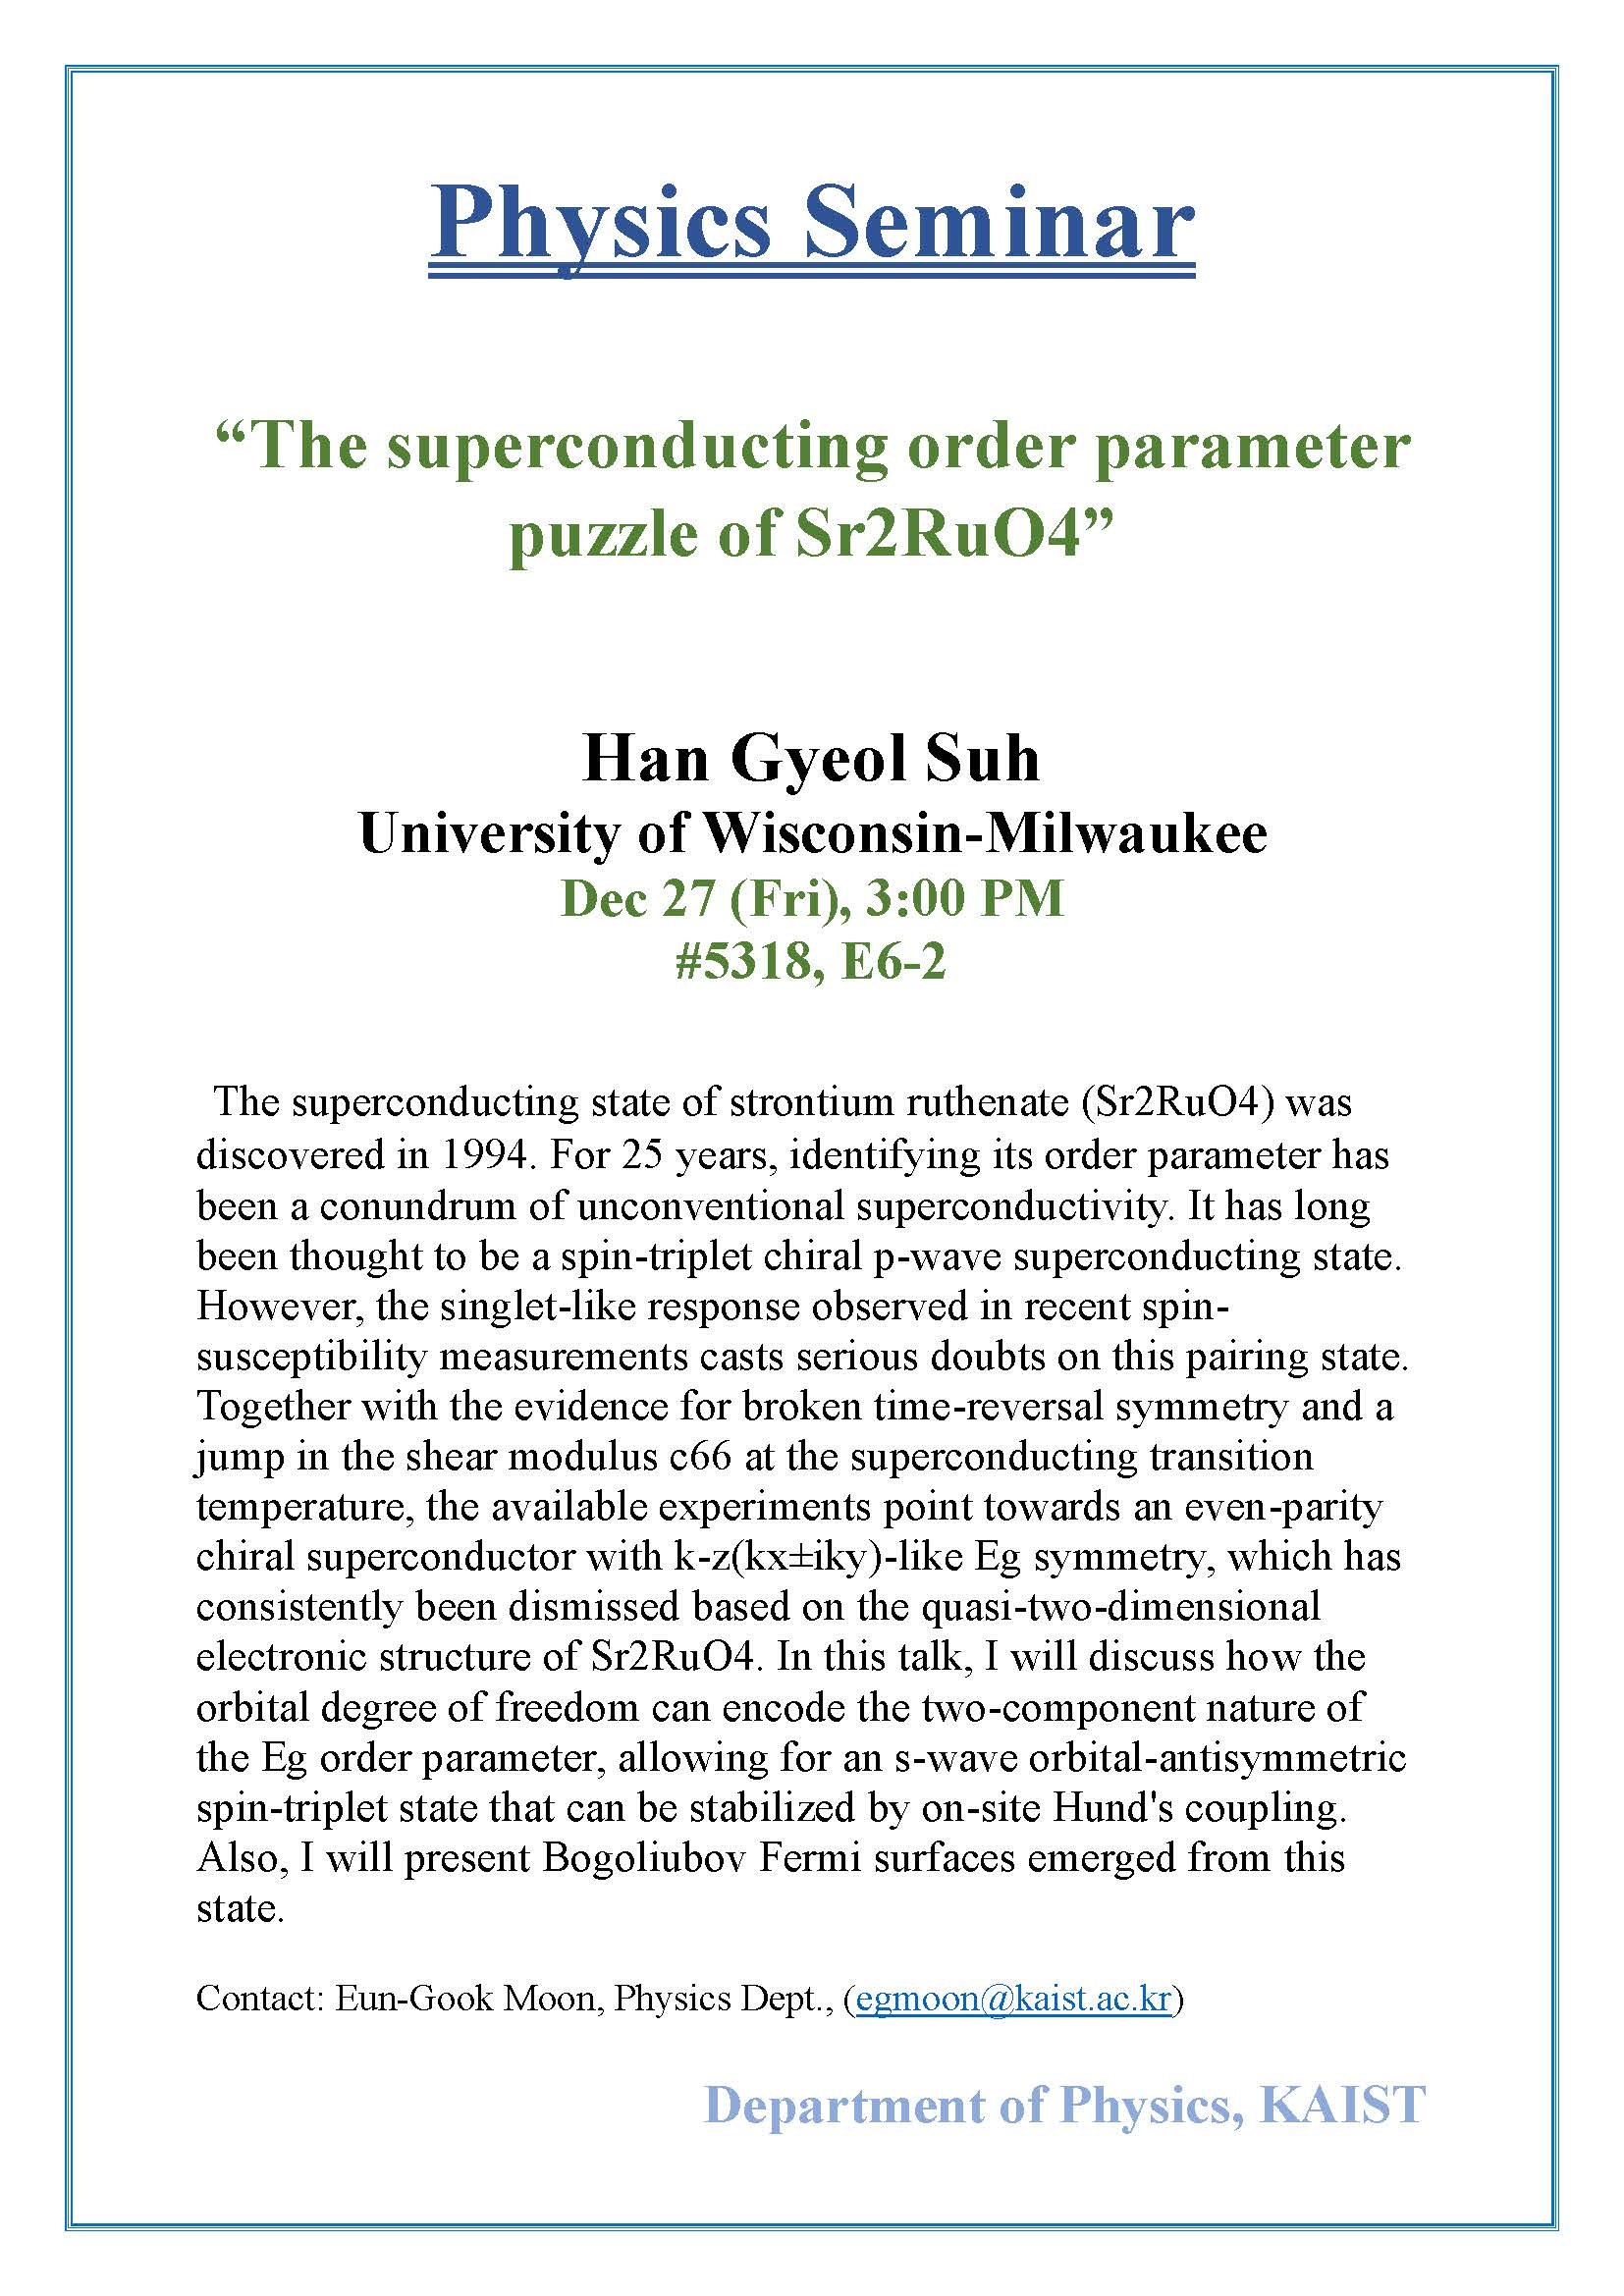 [Seminar Notice]The superconducting order parameter puzzle of Sr2RuO4 (12.27).jpg